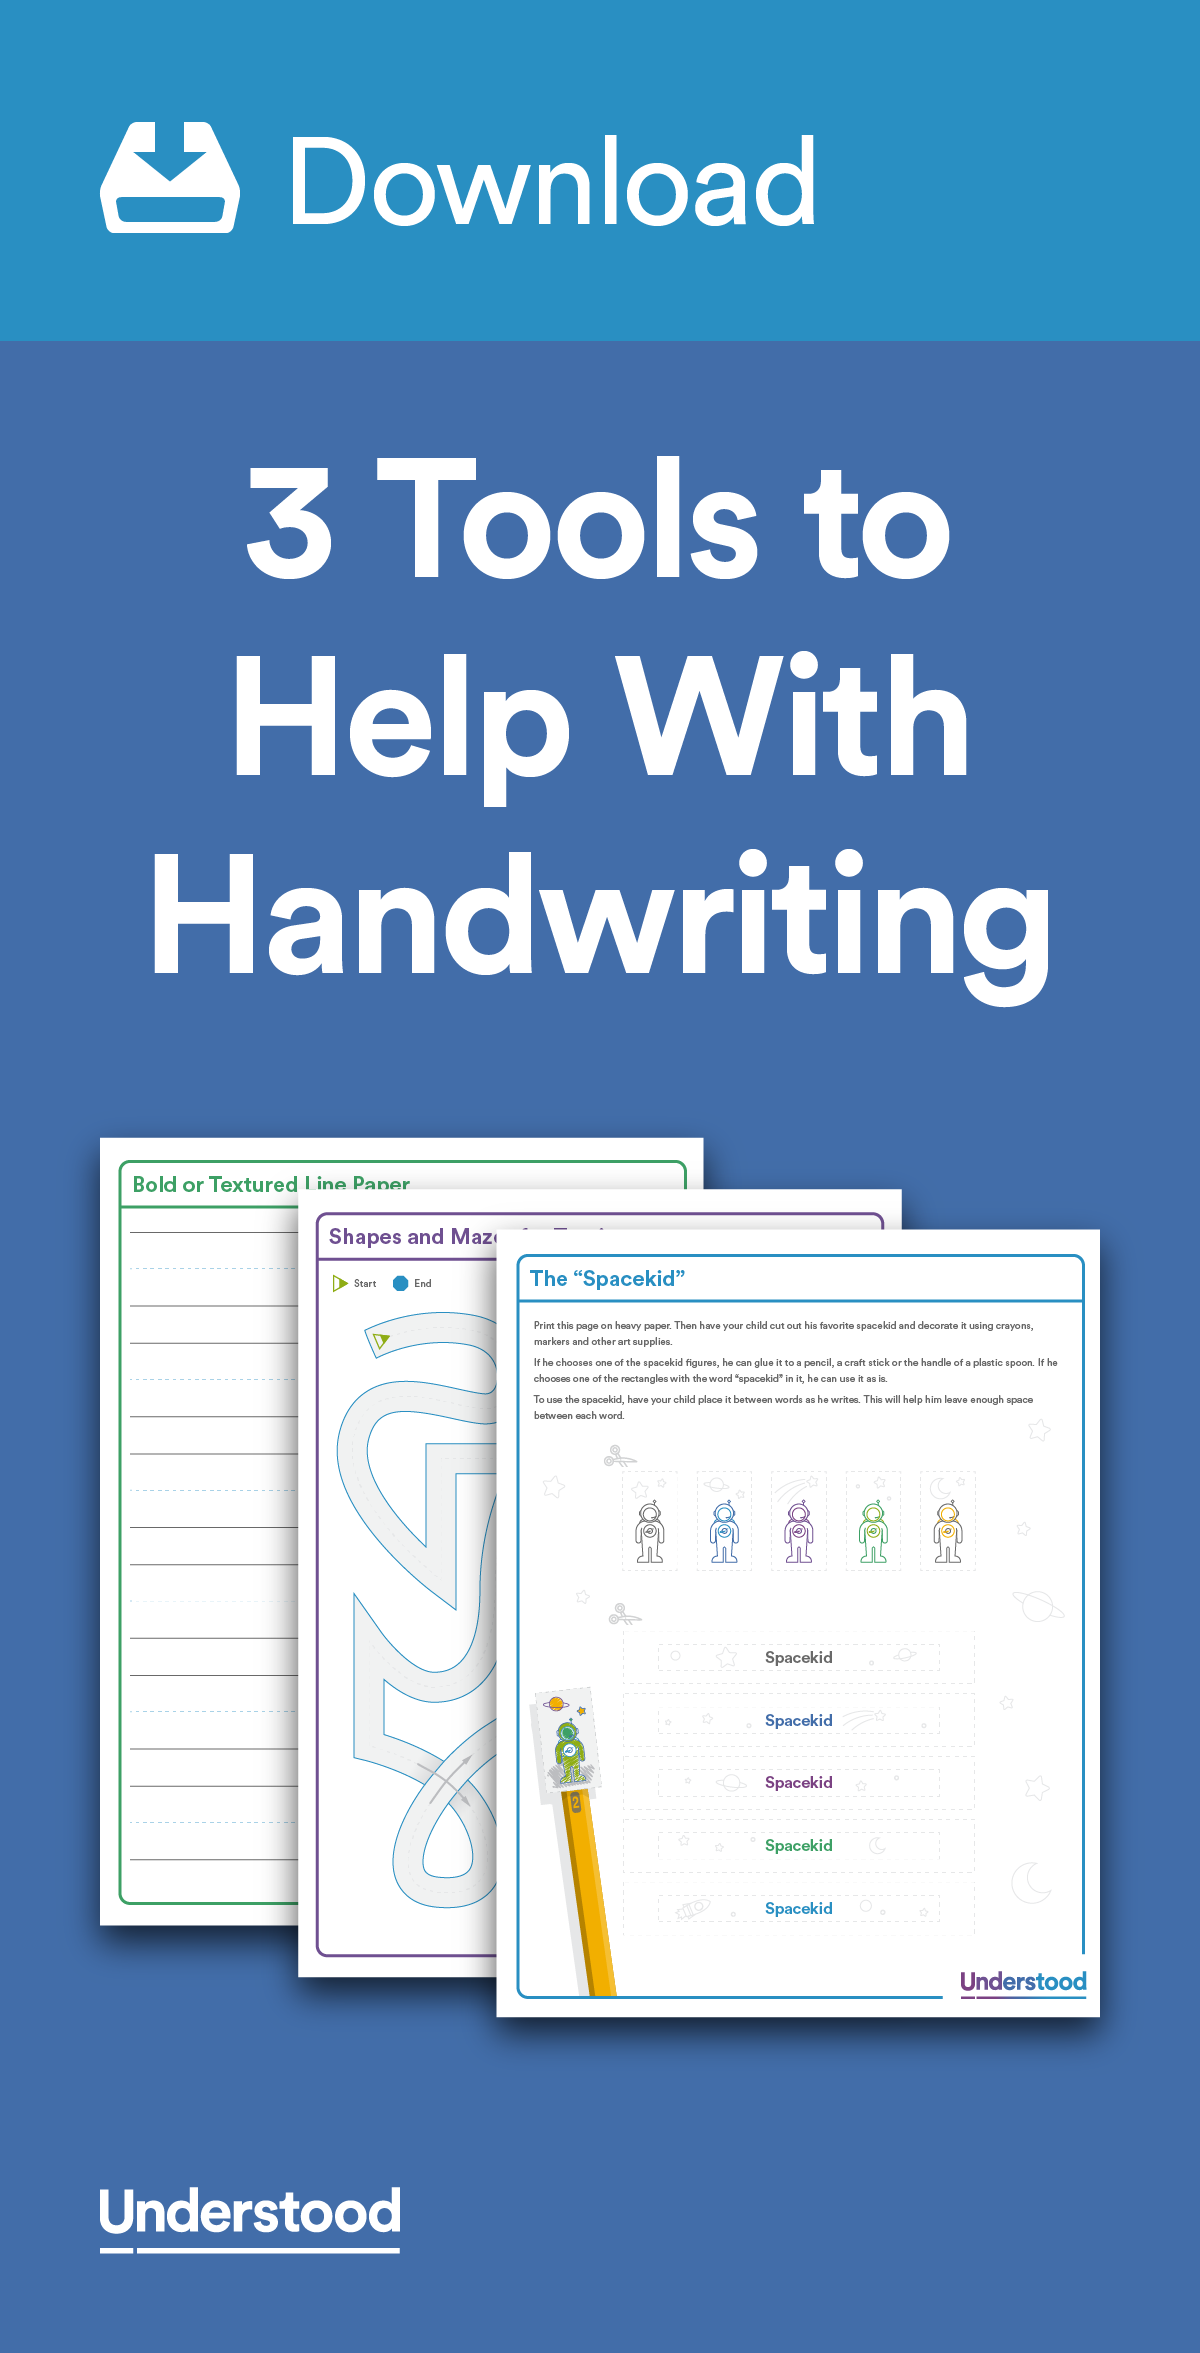 Download Tools To Help With Handwriting